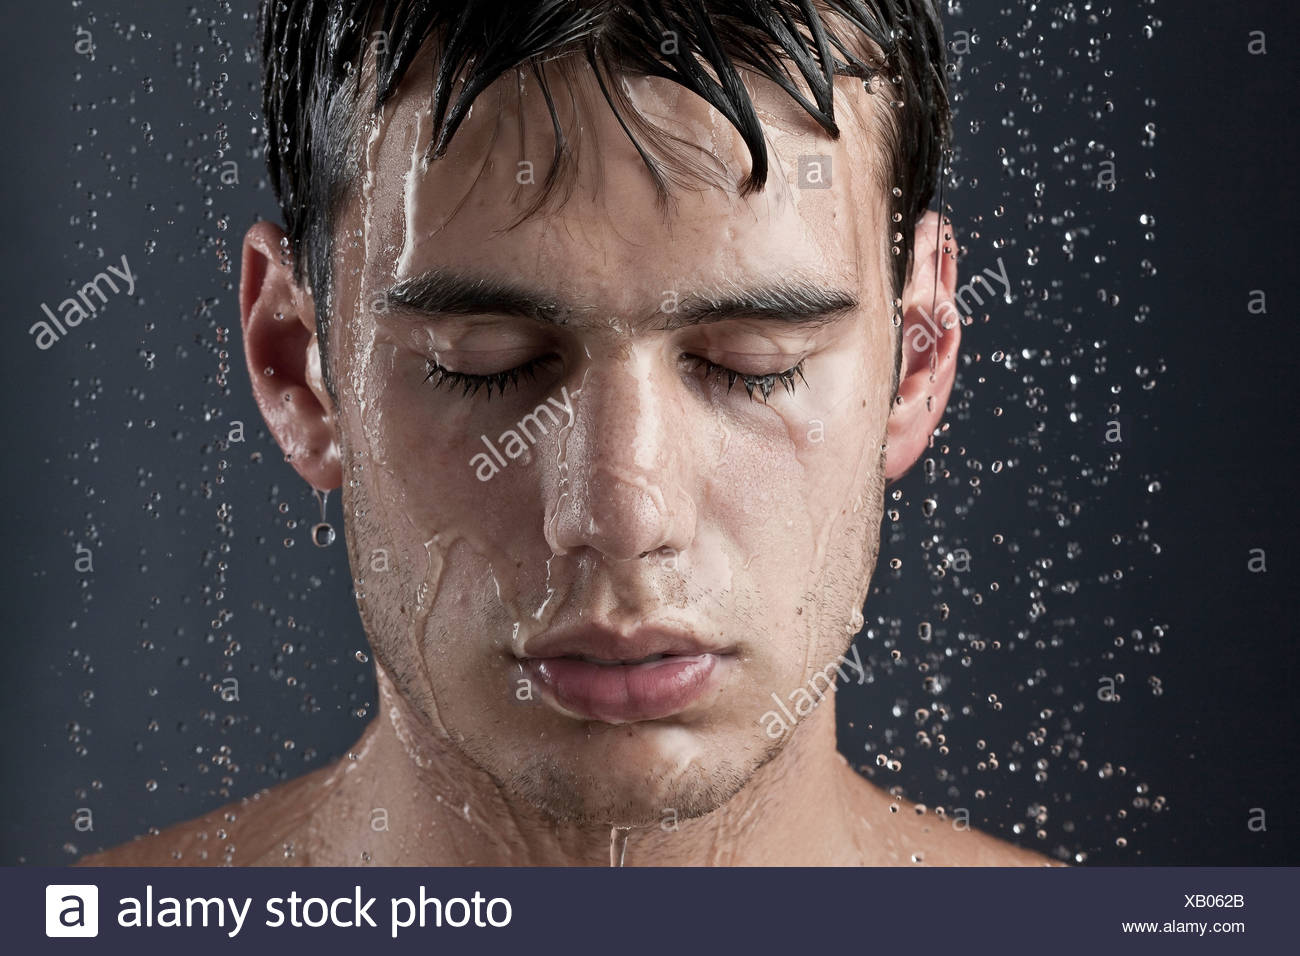 Young man covered with water droplets - Stock Image